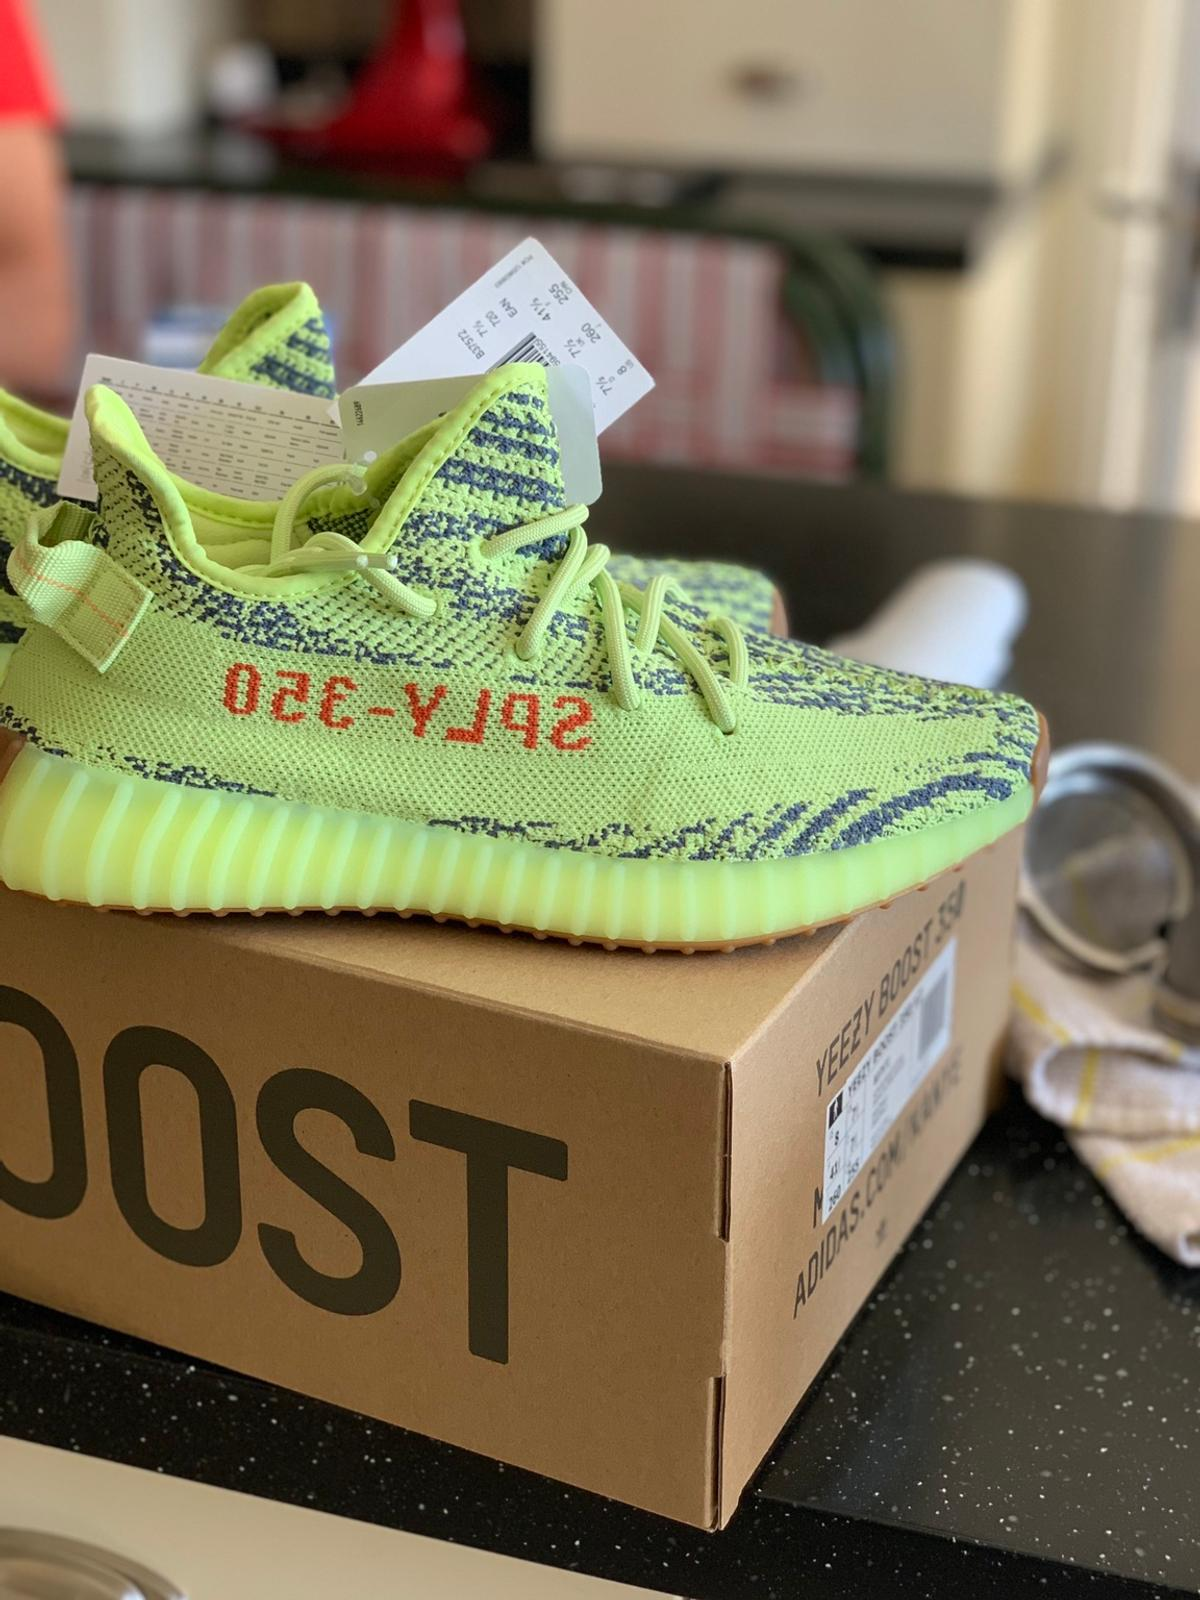 NEW Yeezy Boost 350 Semi Frozen Yellow UK7.5 in DA1 Dartford